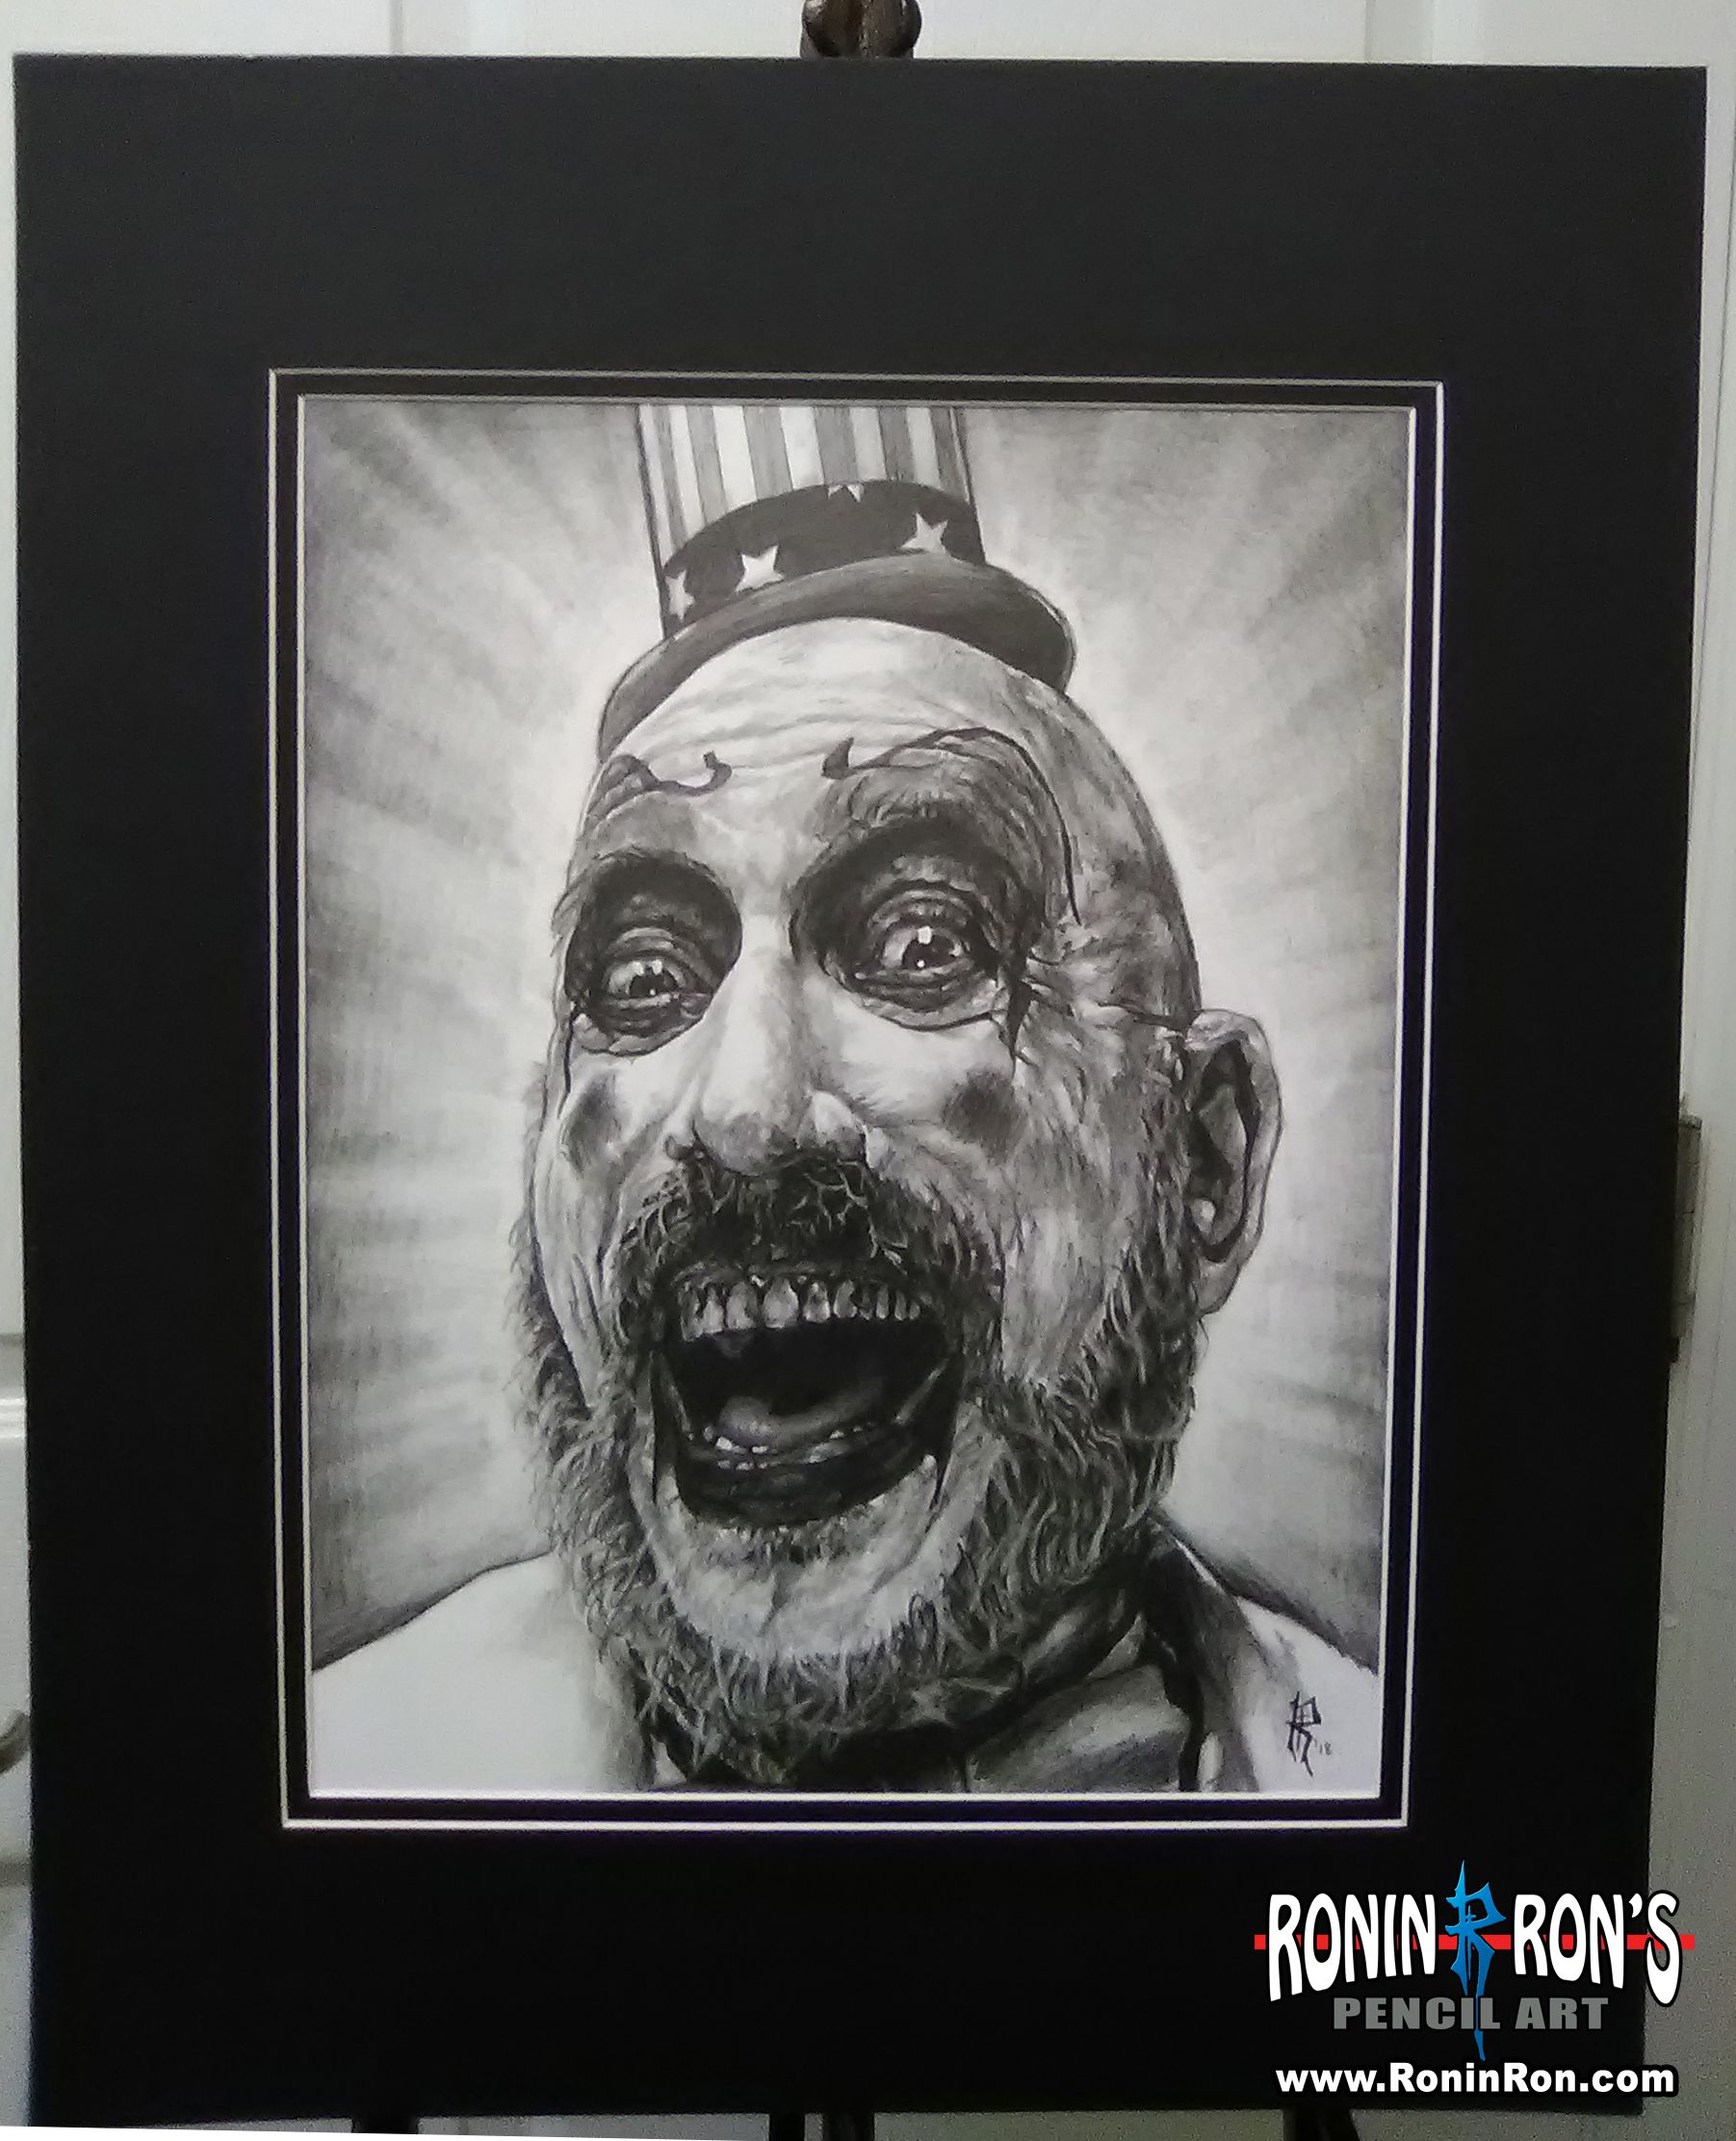 11 X 14 Pencil Drawing Of Sid Haig As Captain Spaulding From Rob